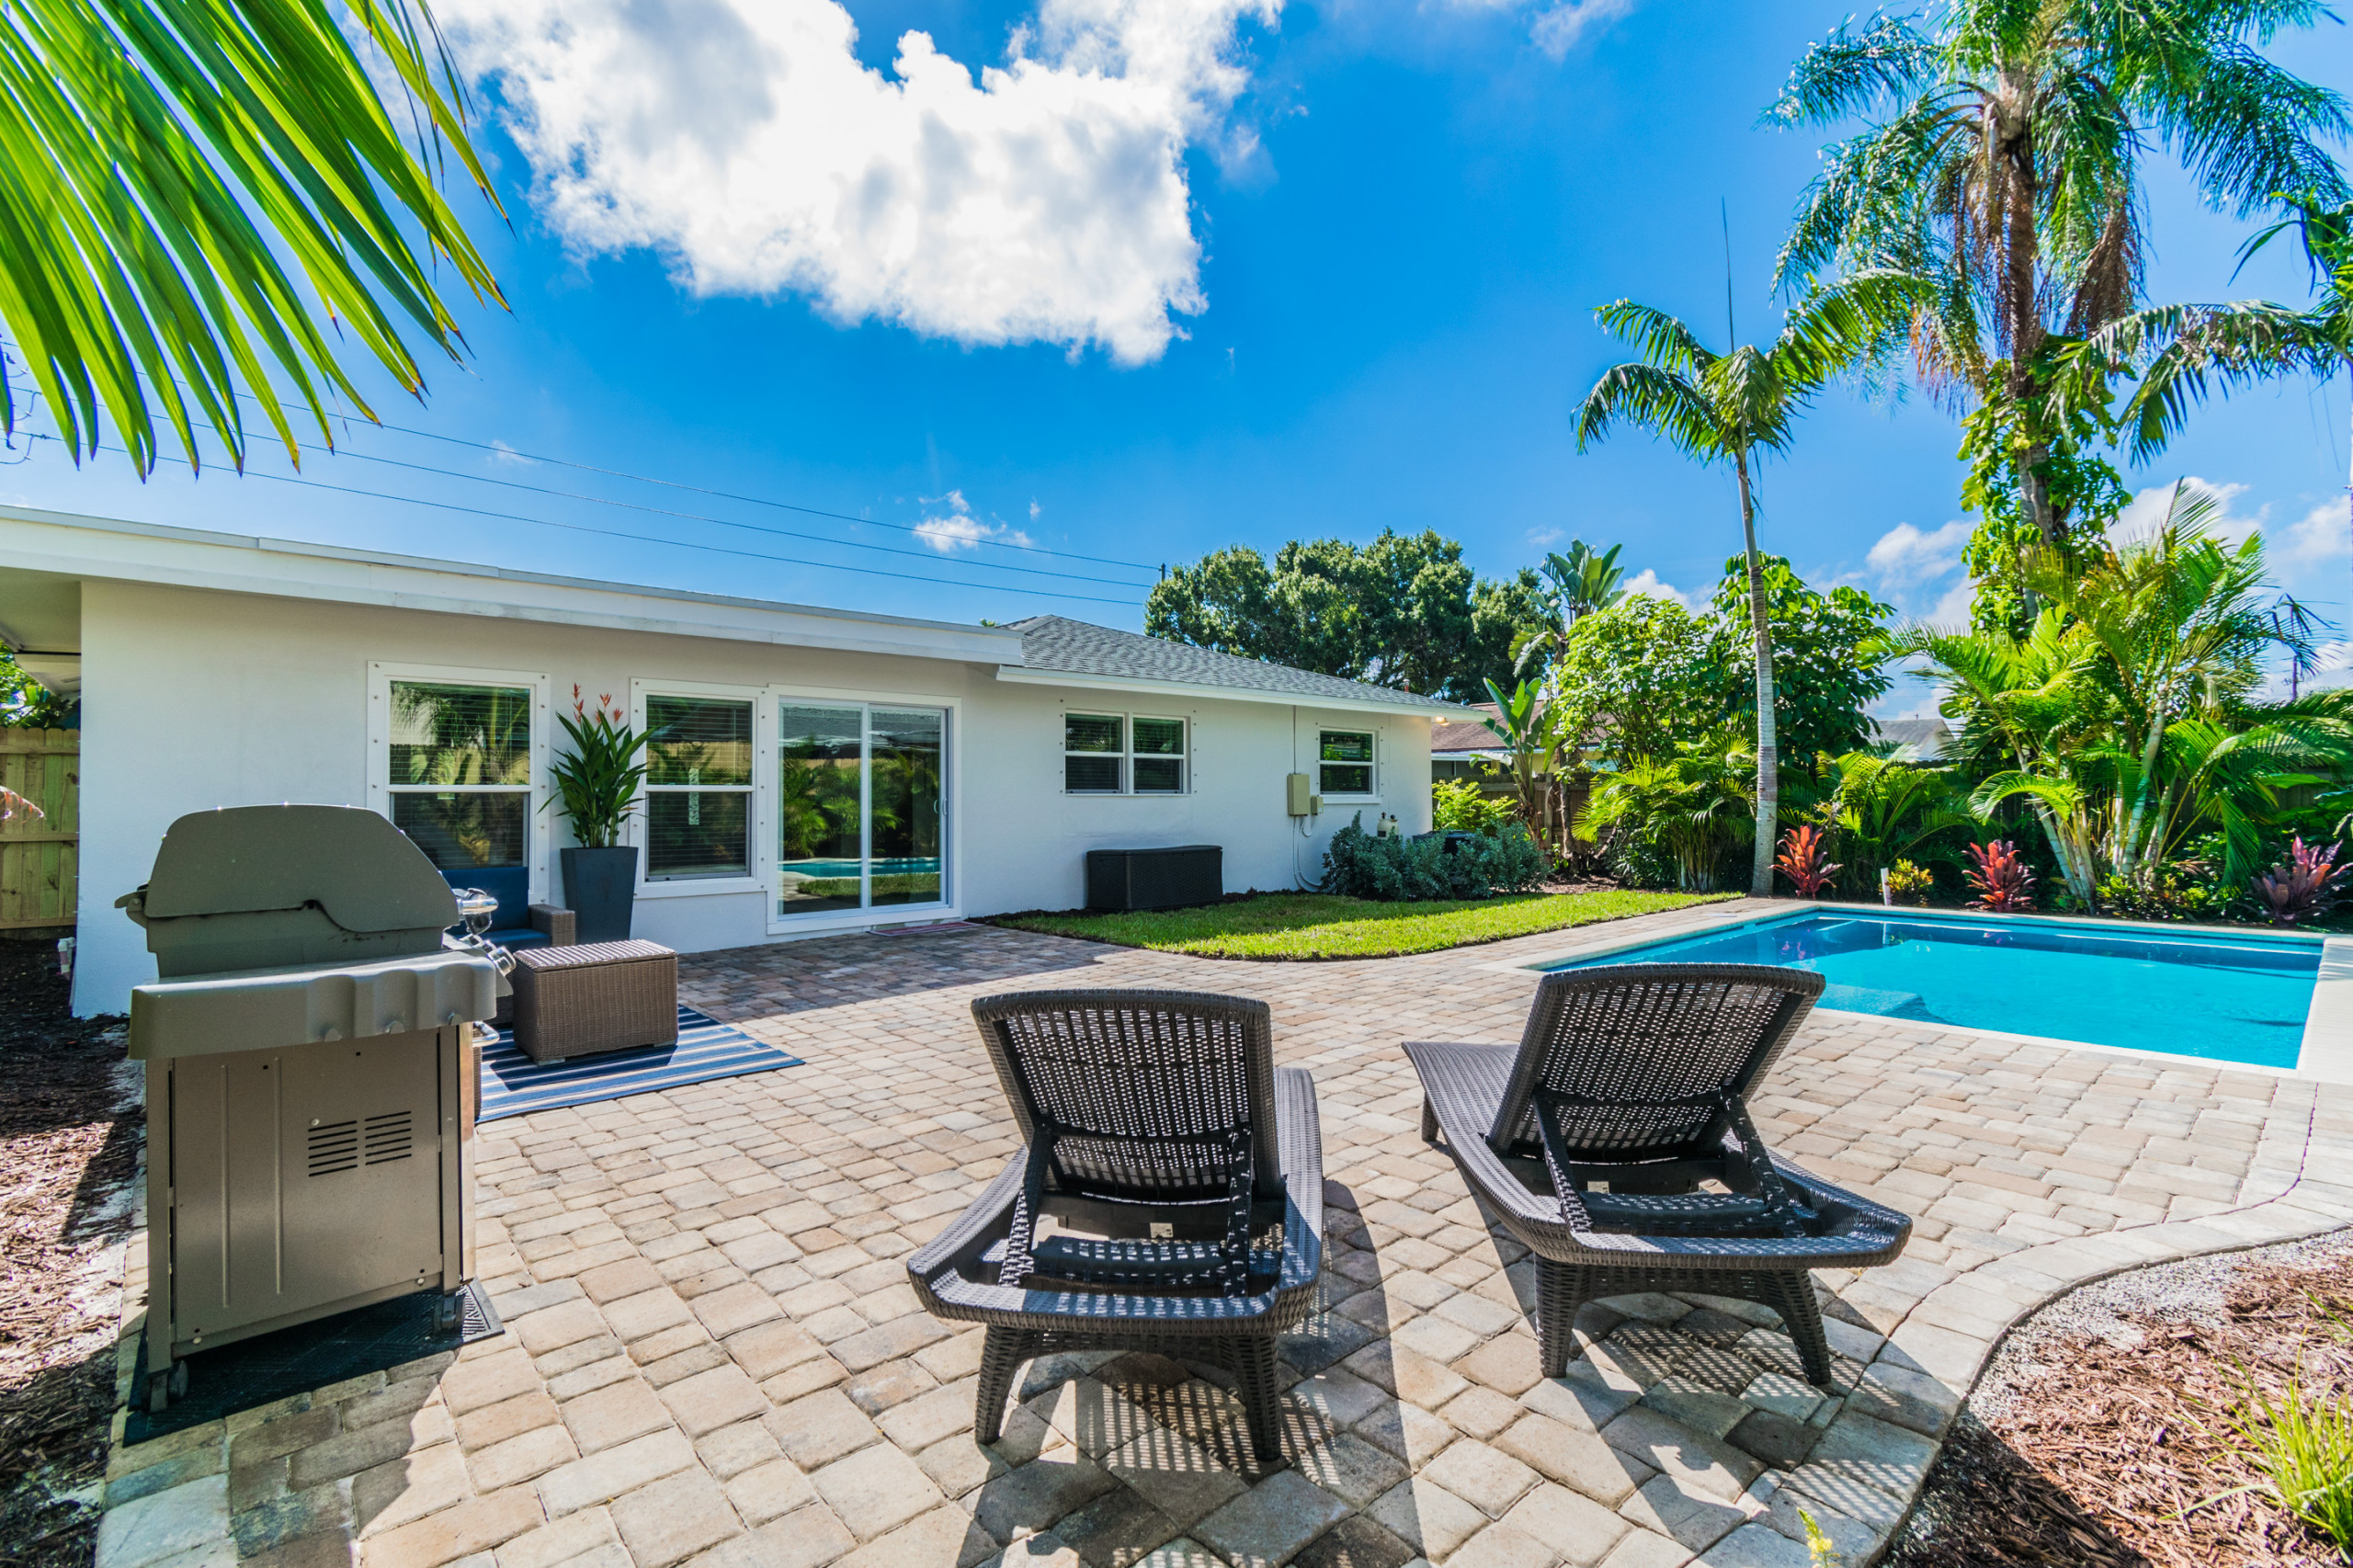 Pool and outdoor living area remodel with tropical landscaping